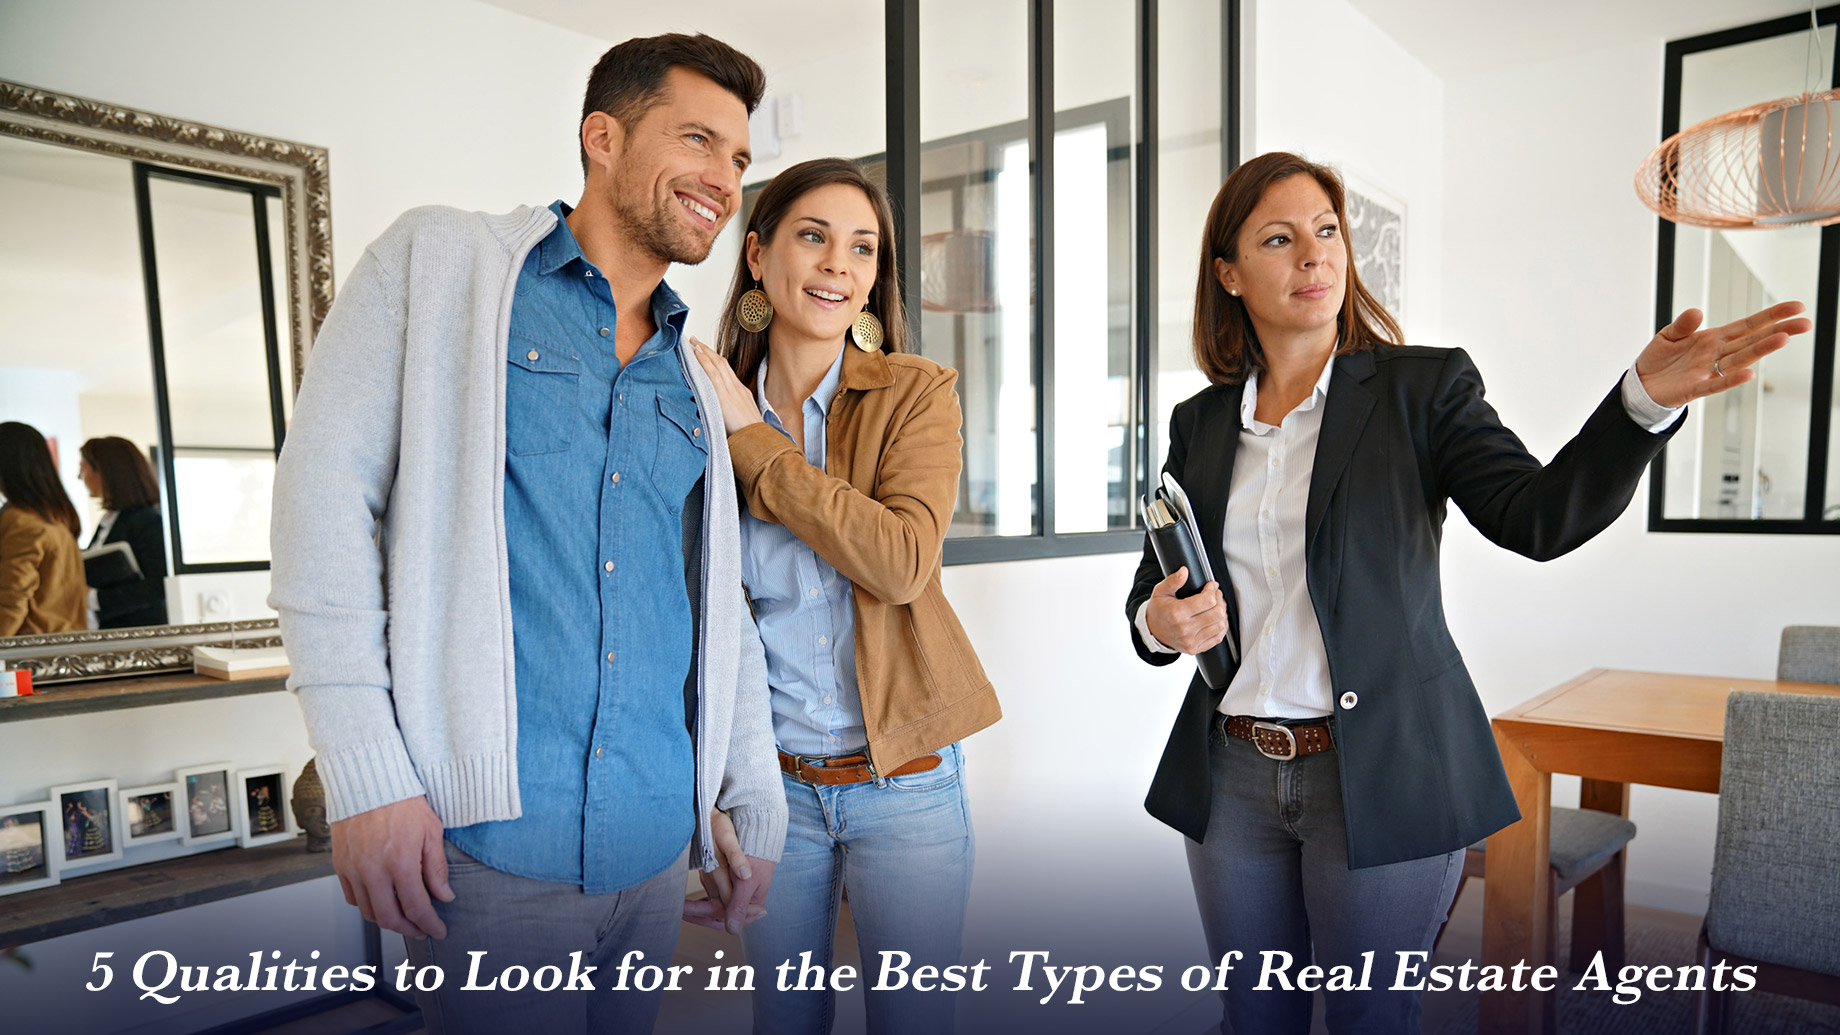 5 Qualities to Look for in the Best Types of Real Estate Agents